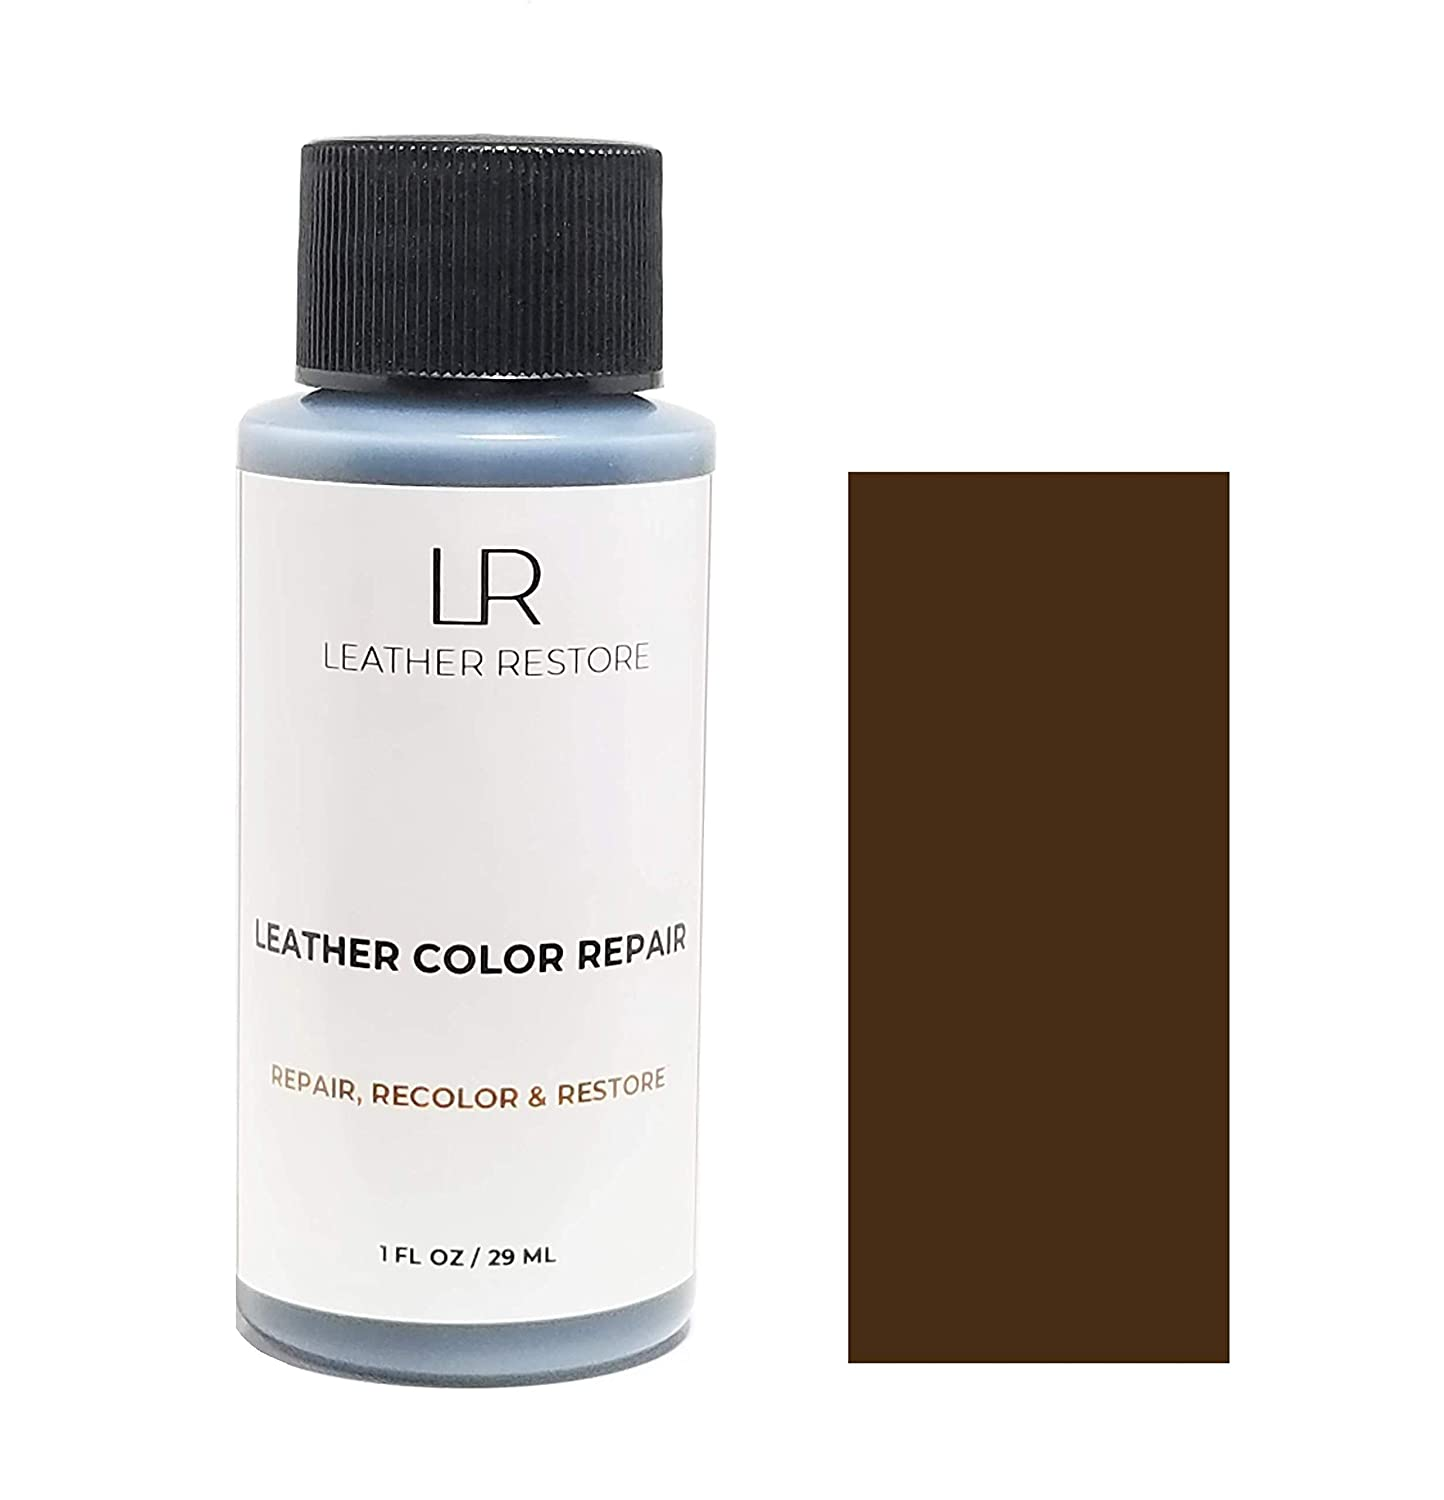 Leather Restore Leather Color Repair, Dark Brown 1 OZ - Repair, Recolor and Restore Couch, Furniture, Auto Interior, Car Seats, Vinyl and Shoes